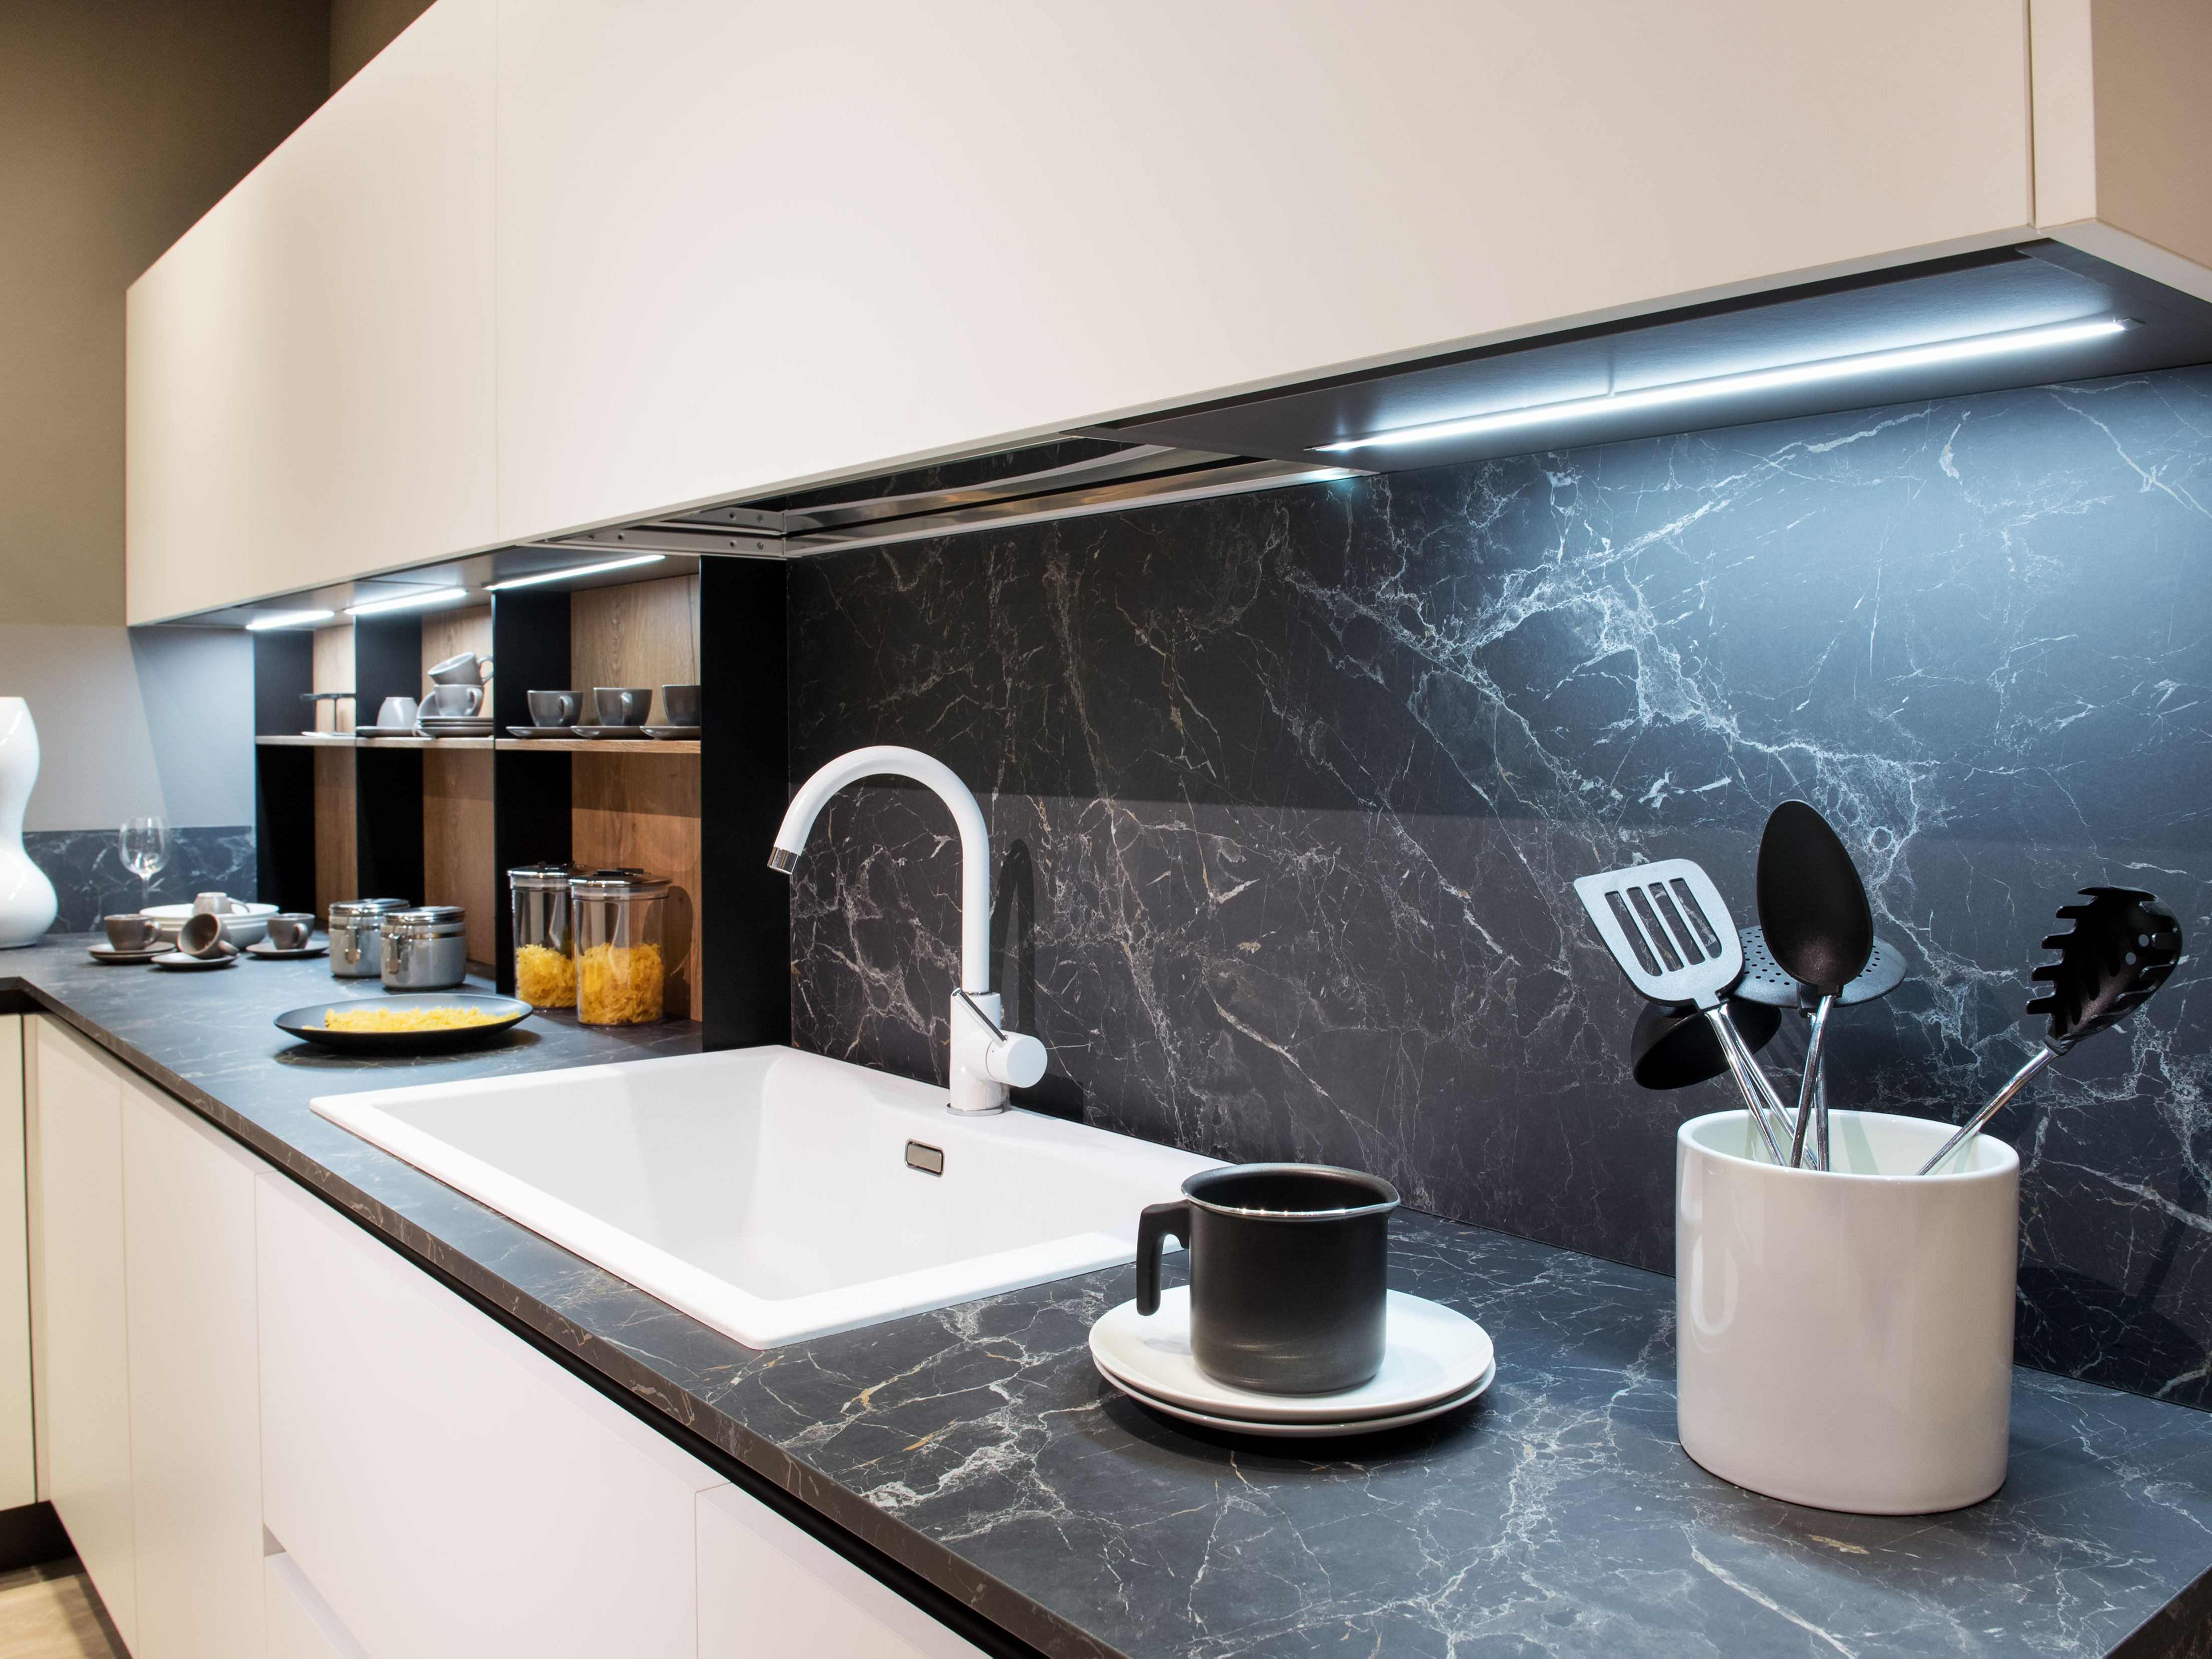 How To Clean Marble Countertops With Baking Soda